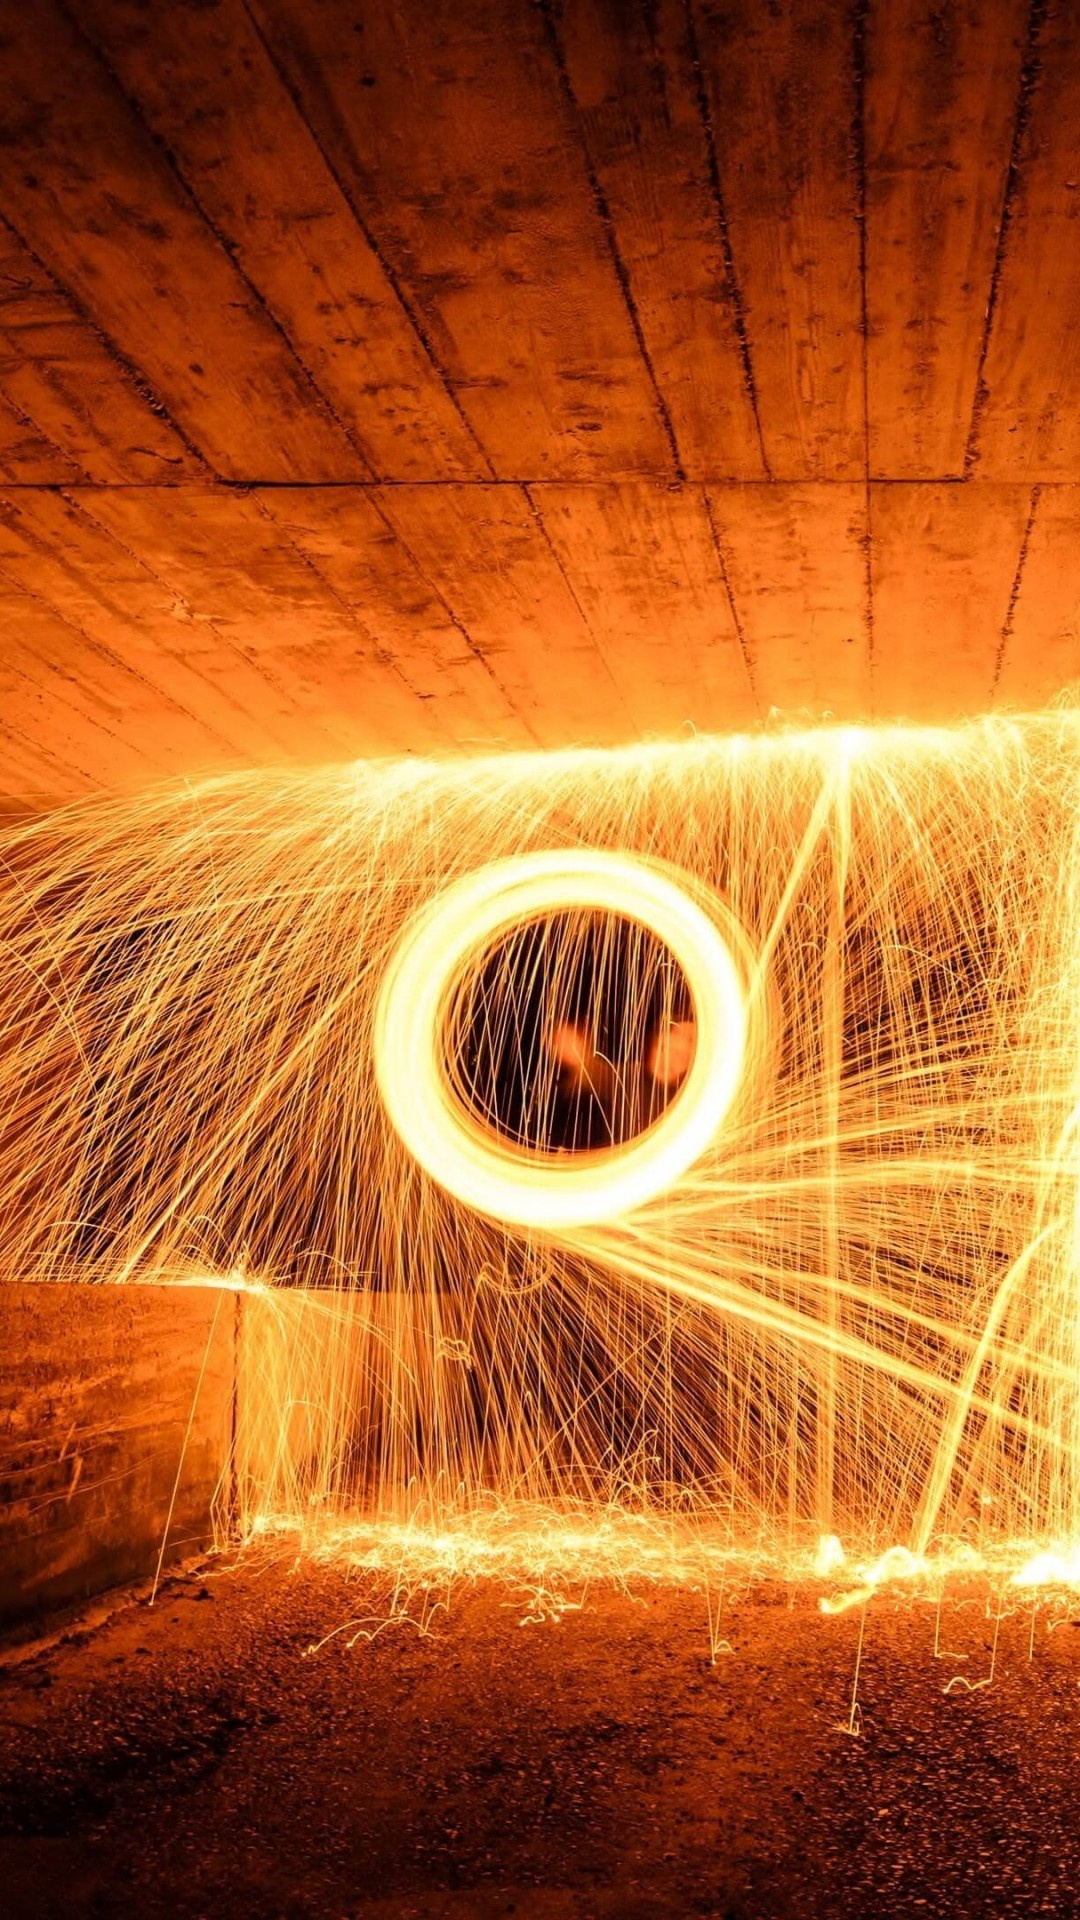 Wire Wool Long Exposure Wallpaper for SAMSUNG Galaxy Note 3